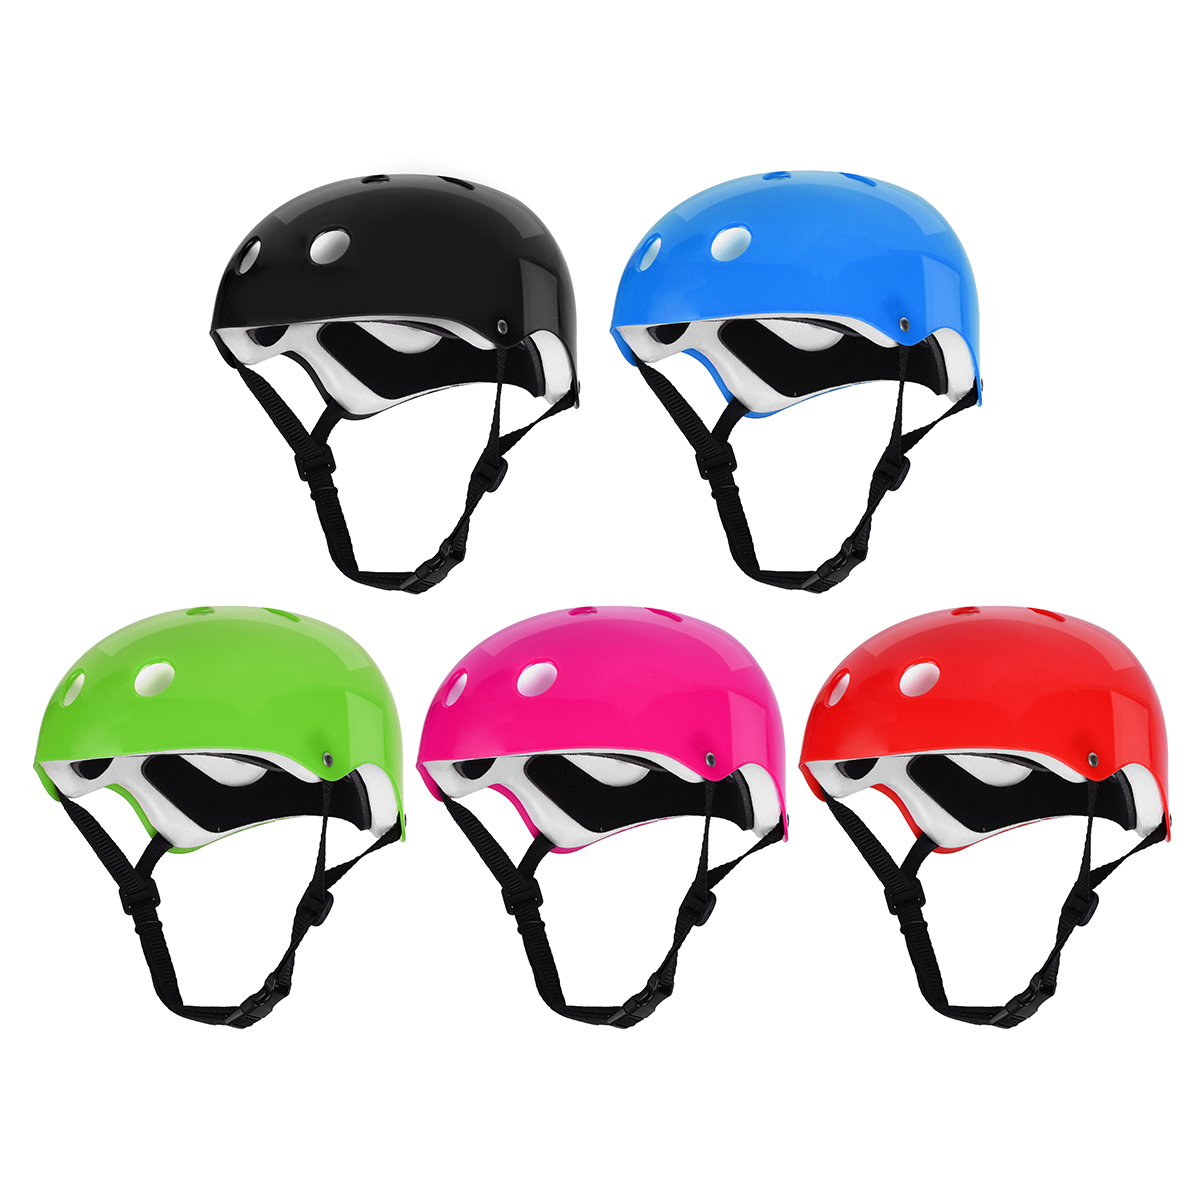 Kids Helmets Head-Protector Bicycle Riding Girls Child Safety Outdoor Ce 5-Colors Ice-Skateing